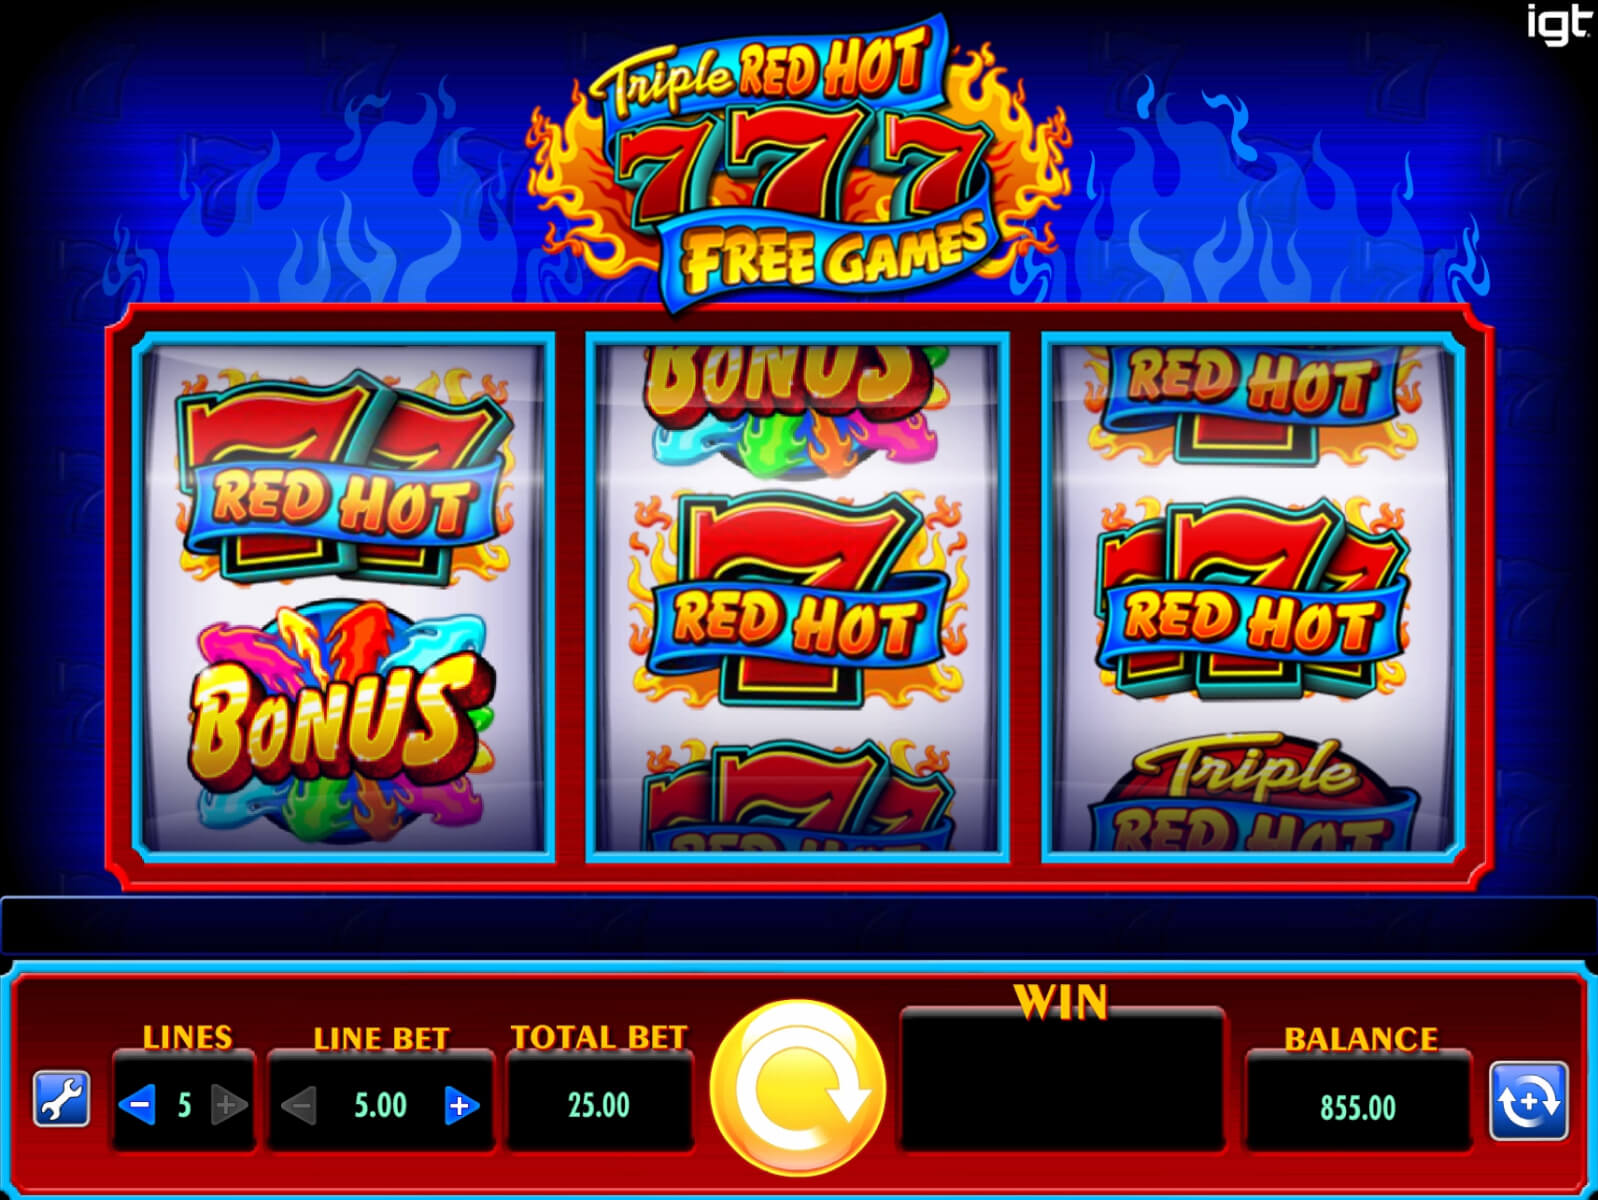 Screenshot of the game: Triple Red Hot 7s Free Games